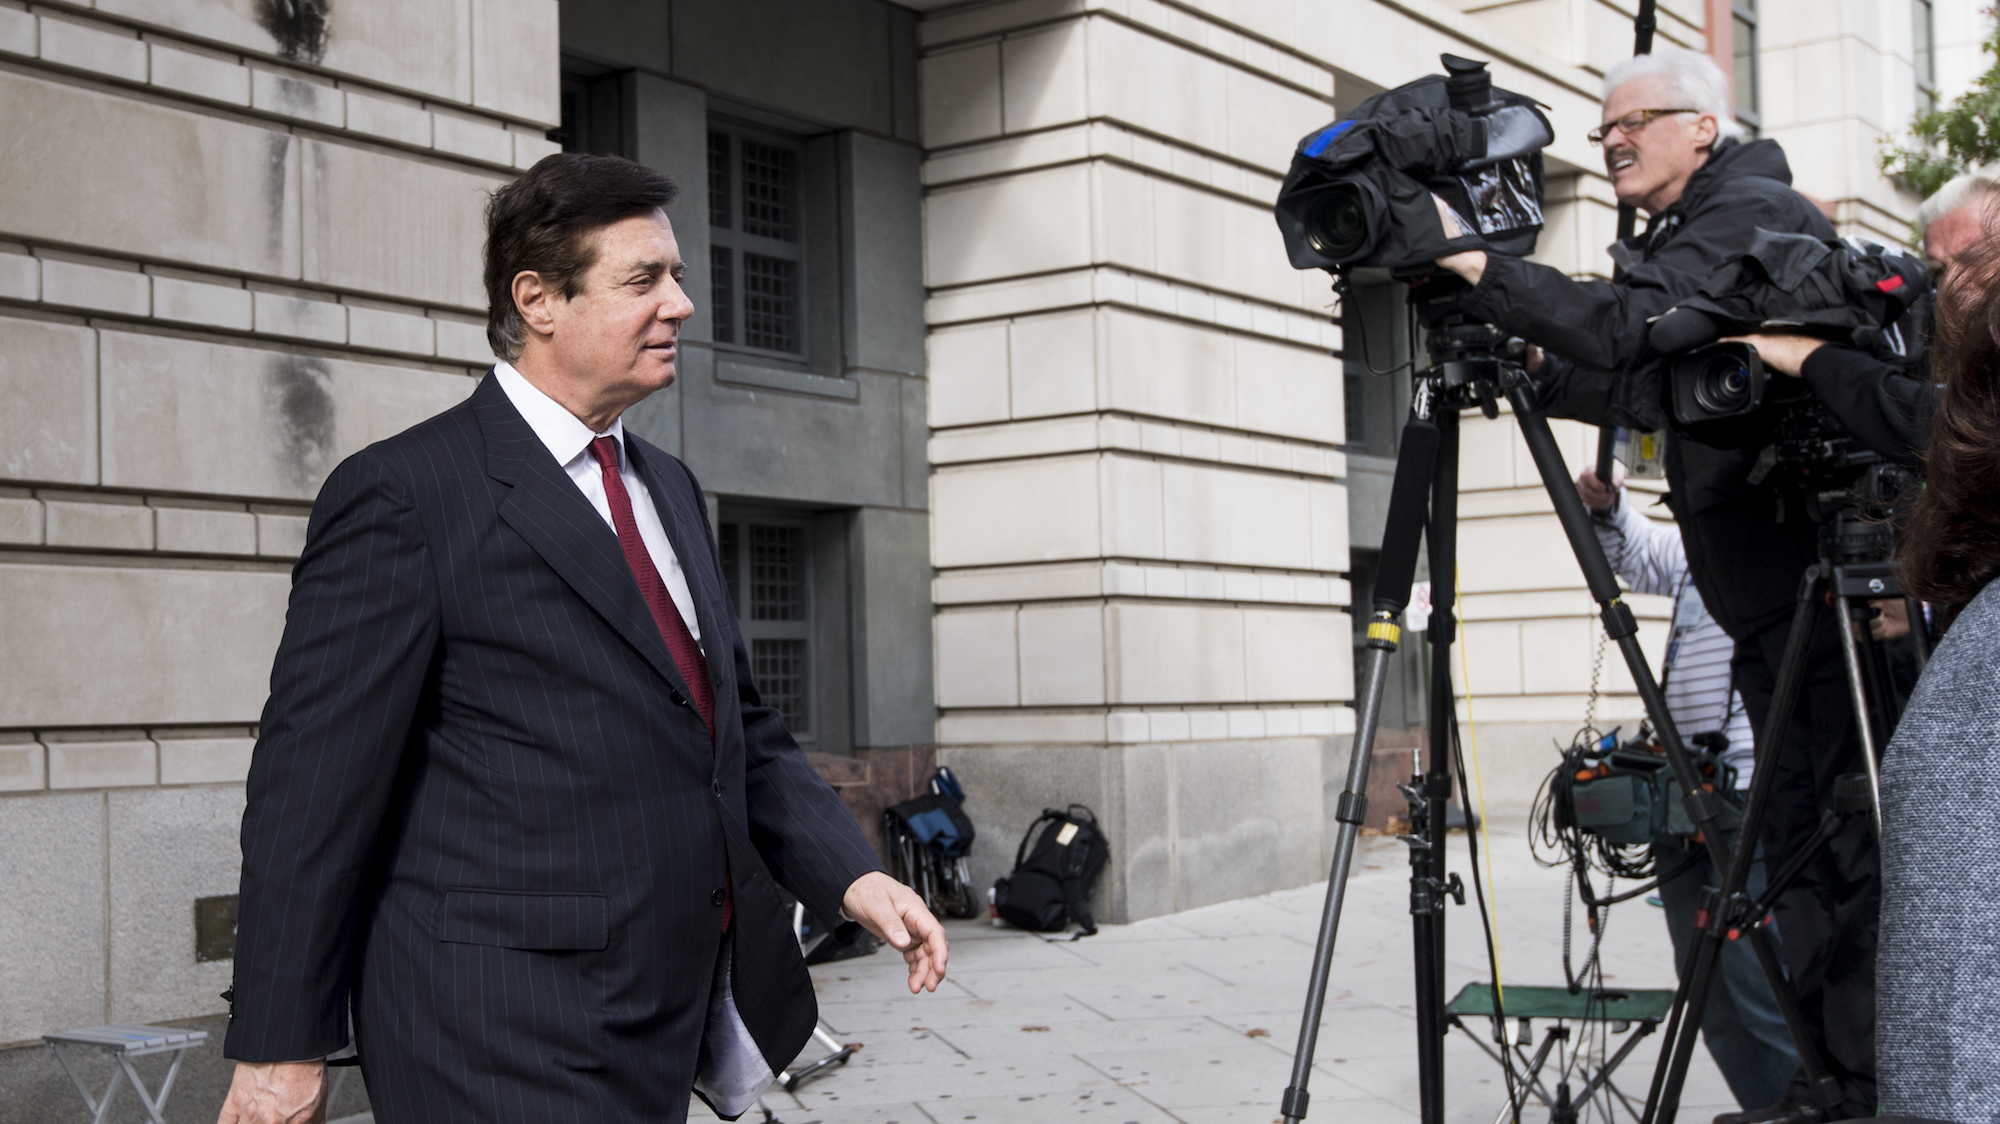 Paul Manafort jailed on witness tampering charges